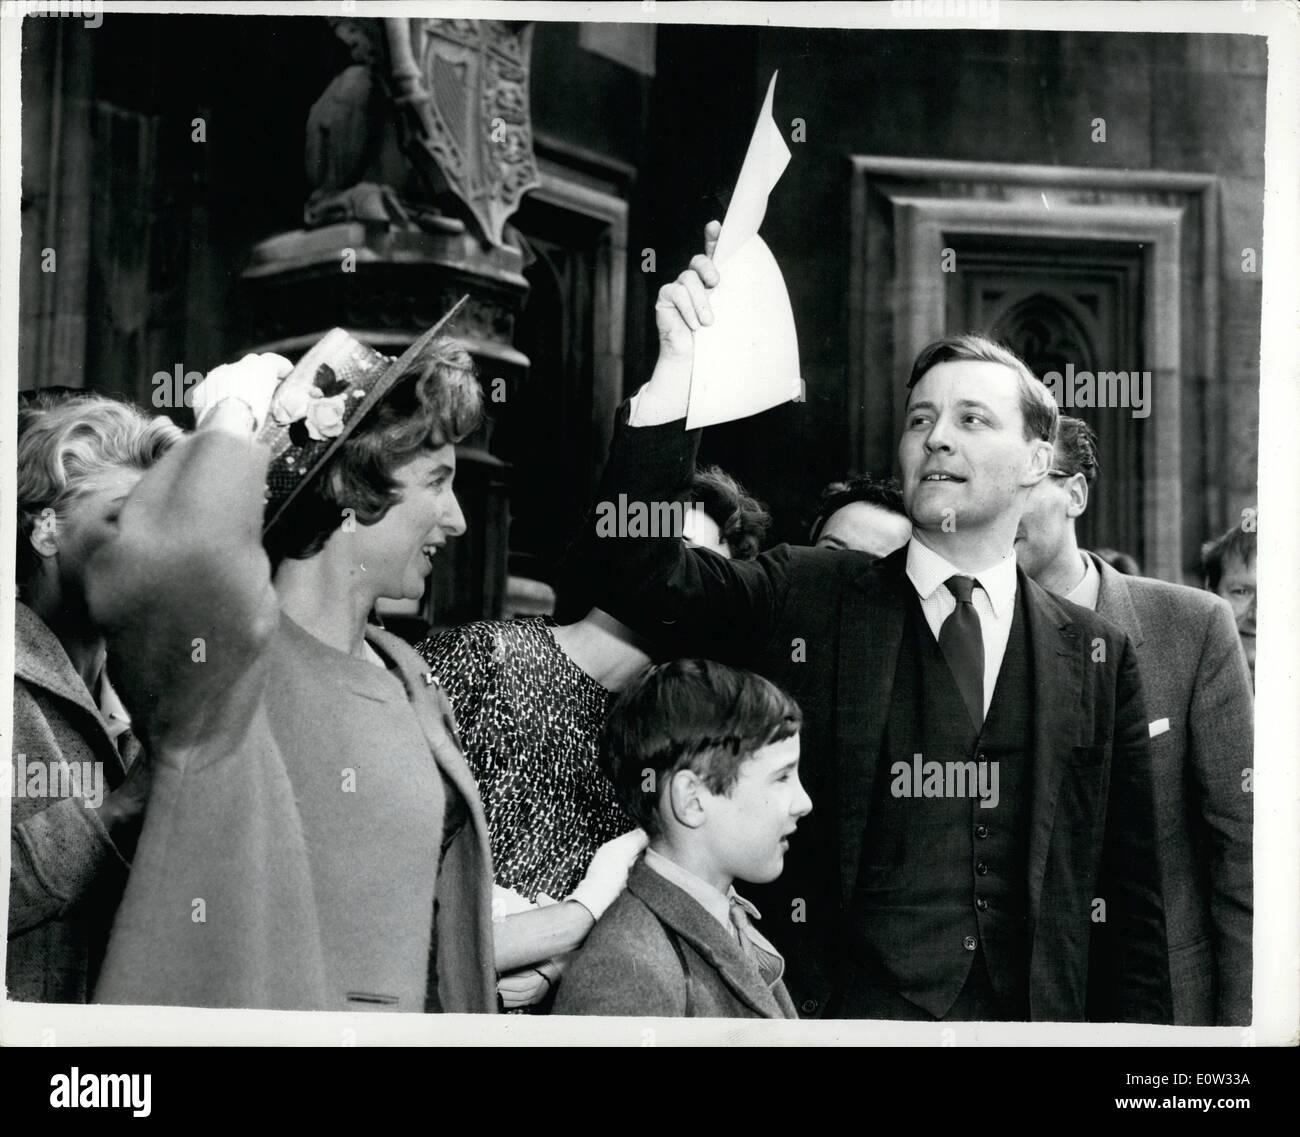 May 05, 1961 - The Reluctant Peer Goes To The House Of Commons: Mr. Anthony Wedgwood Benn - ''The Reluctant - Stock Image